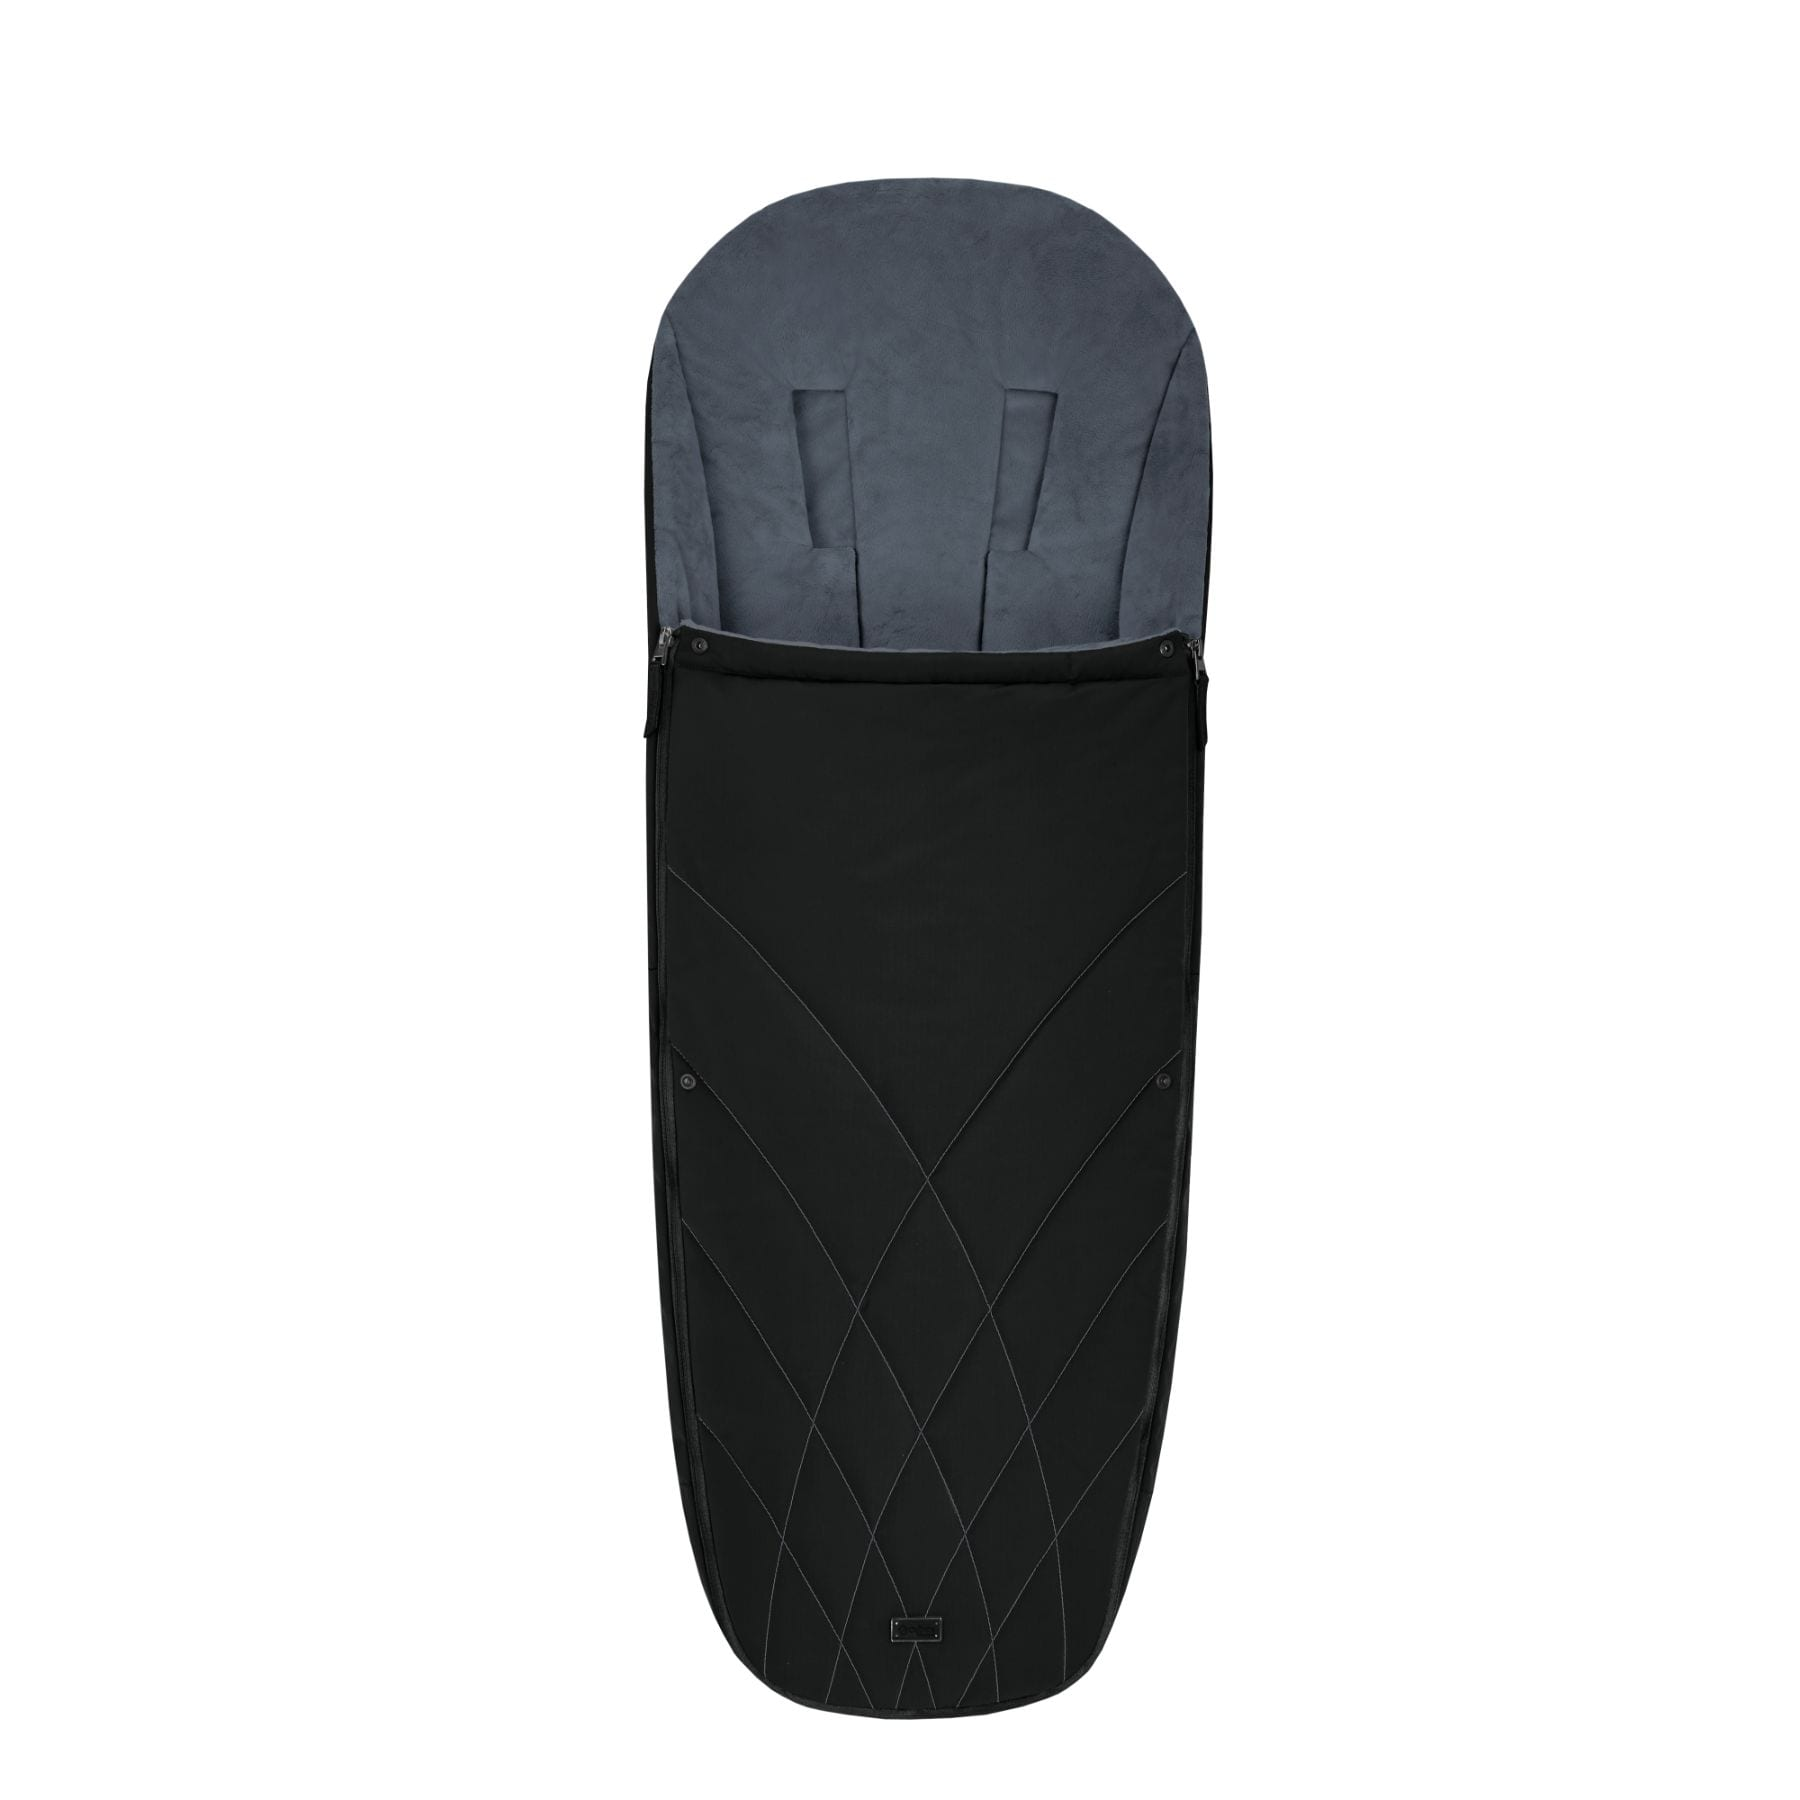 Cybex Platinum Footmuff - Deep Black